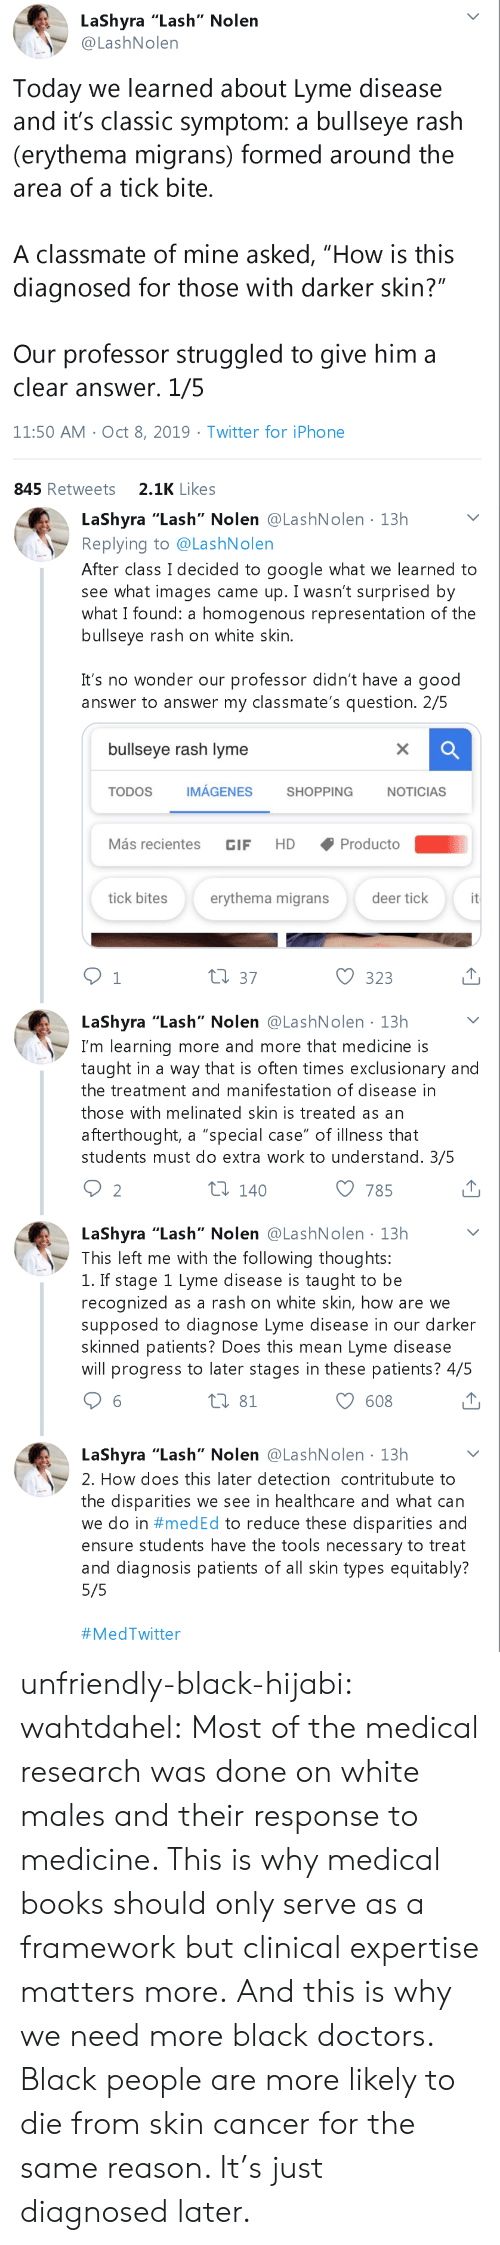 "disease: LaShyra ""Lash"" Nolen  @LashNolen  Today we learned about Lyme disease  and it's classic symptom: a bullseye rash  (erythema migrans) formed around the  area of a tick bite.  A classmate of mine asked, ""How is this  diagnosed for those with darker skin?""  Our professor struggled to give him a  clear answer. 1/5  11:50 AM Oct 8, 2019 Twitter for iPho ne  2.1K Likes  845 Retweets   LaShyra ""Lash"" Nolen @LashNolen 13h  Replying to @LashNolen  After class I decided to google what we learned to  see what images came up. I wasn't surprised by  what I found: a homogenous representation of the  bullseye rash on white skin.  .  It's no wonder our professor didn't have a good  answer to answer my classmate's question. 2/5  bullseye rash lyme  X  IMÁGENES  TODOS  SHOPPING  NOTICIAS  Más recientes  Producto  HD  GIF  it  tick bites  erythema migrans  deer tick  t1 37  1  323  LaShyra ""Lash"" Nolen @LashNolen 13h  I'm learning more and more that medicine is  taught in a way that is often times exclusionary and  the treatment and manifestation of disease in  those with melinated skin is treated as an  afterthought, a ""special case"" of illness that  students must do extra work to understand. 3/5  ti 140  2  785  LaShyra ""Lash"" Nolen @LashNolen 13h  This left me with the following thoughts:  1. If stage 1 Lyme disease is taught to be  recognized as a rash on white skin, how are we  supposed to diagnose Lyme disease in our darker  skinned patients? Does this mean Lyme disease  will progress to later stages in these patients? 4/5  t 81  608  LaShyra ""Lash"" Nolen @LashN olen 13h  2. How does this later detection contritubute to  the disparities we see in healthcare and what can  we do in #med Ed to reduce these disparities and  ensure students have the tools necessary to treat  and diagnosis patients of all skin types equitably?  5/5  unfriendly-black-hijabi:  wahtdahel:  Most of the medical research was done on white males and their response to medicine. This is why medical books should only serve as a framework but clinical expertise matters more. And this is why we need more black doctors.     Black people are more likely to die from skin cancer for the same reason. It's just diagnosed later."